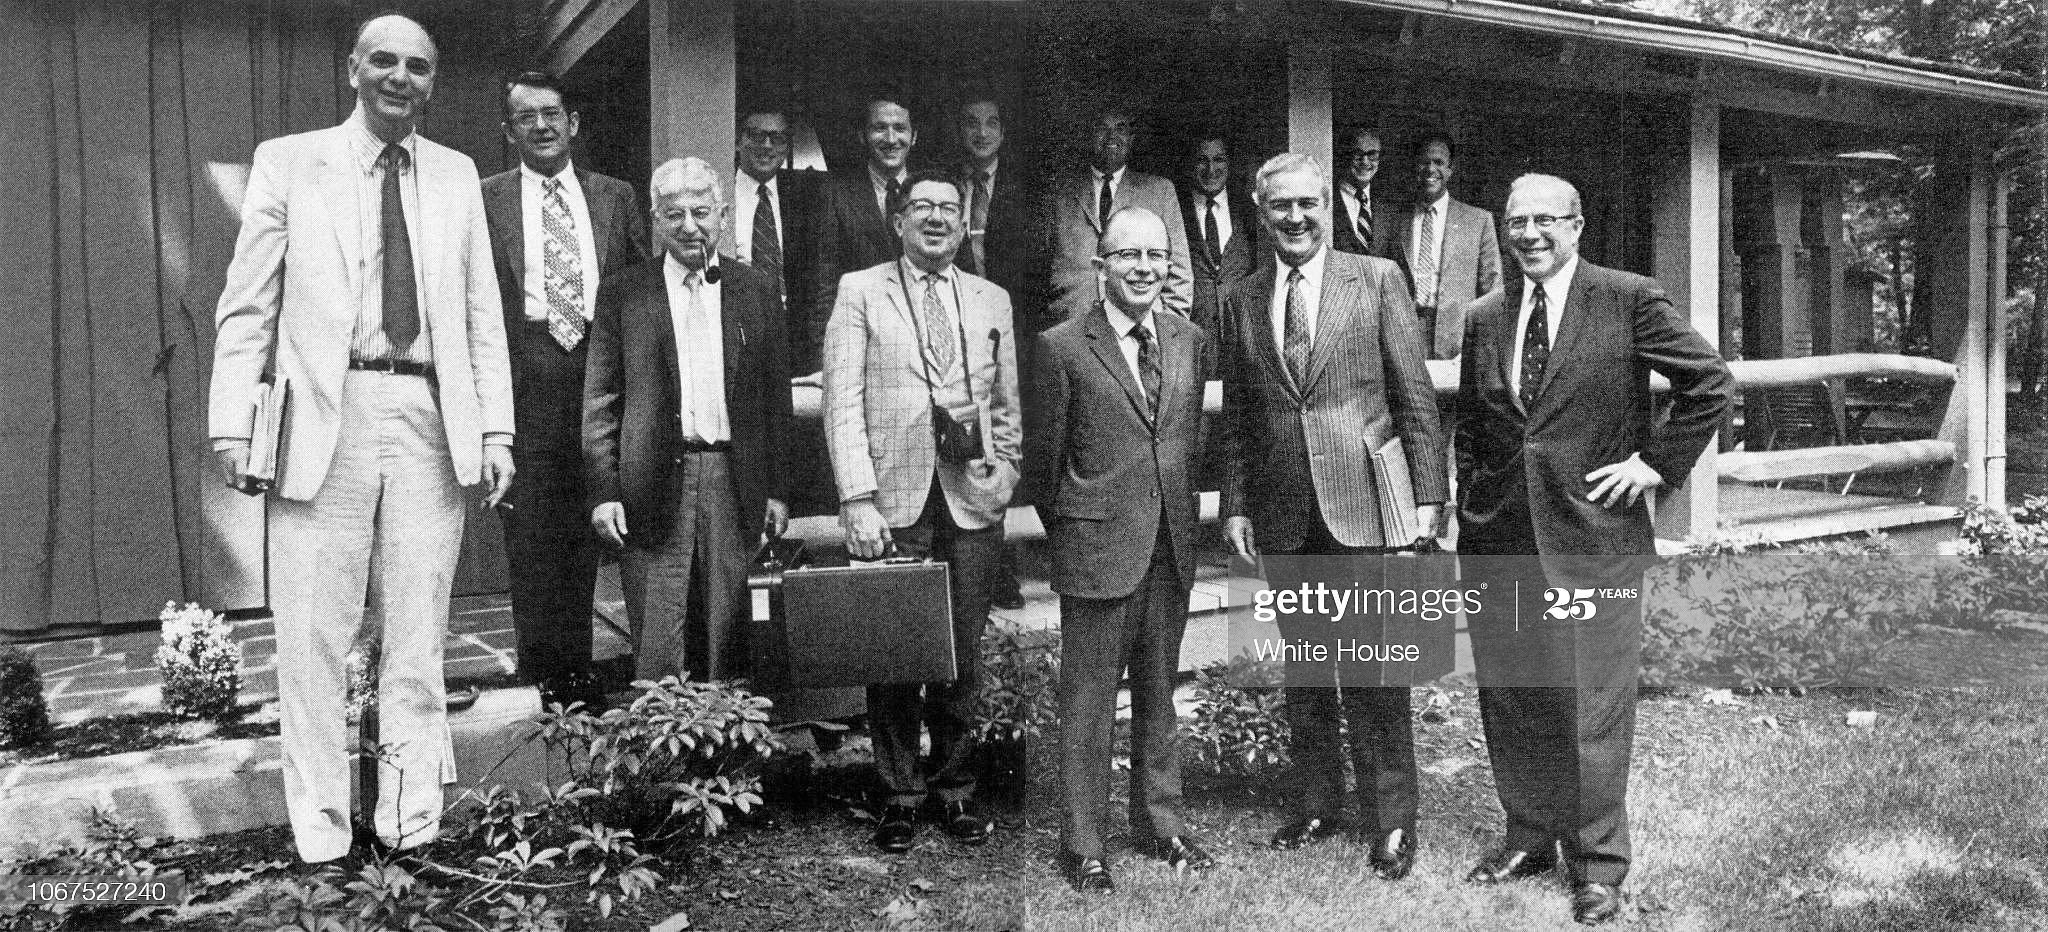 Aug. 13-15, 1971 Camp David Meeting to take America off the gold standard